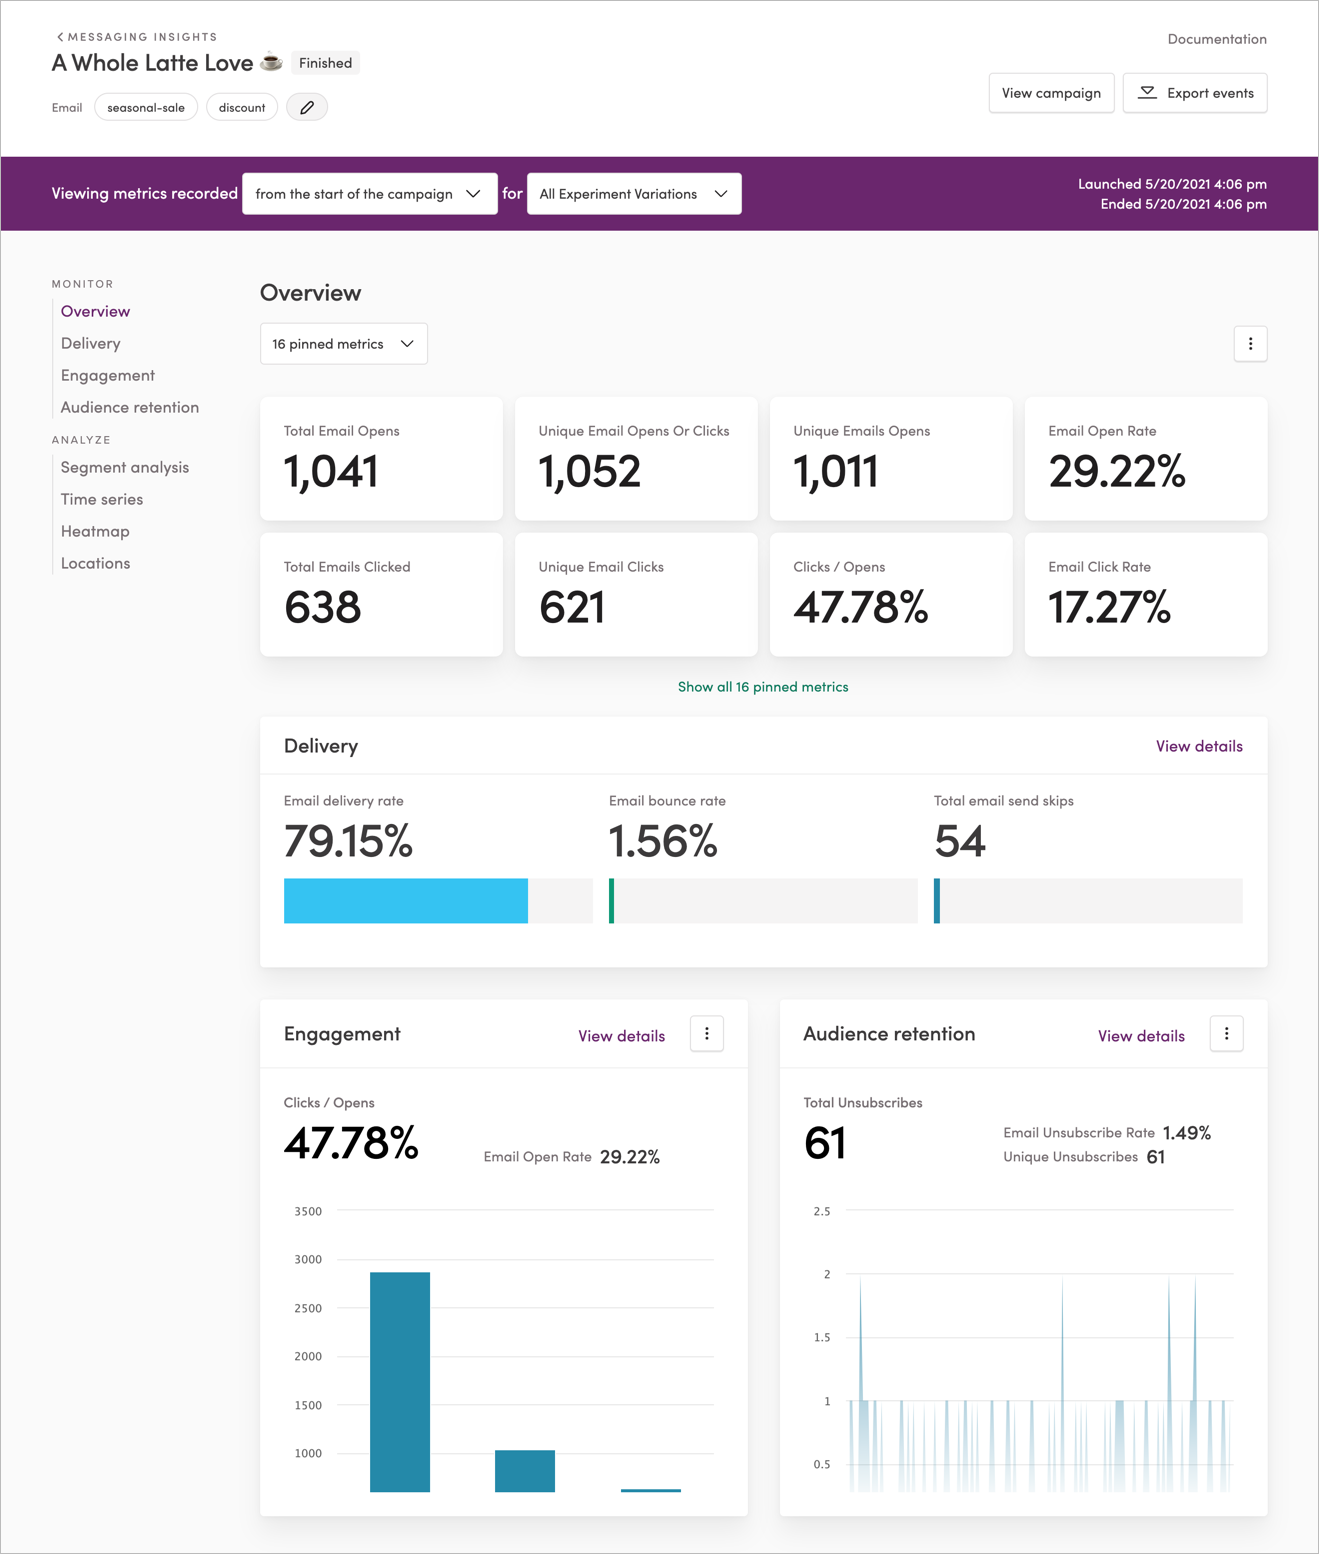 The Campaign Analytics page